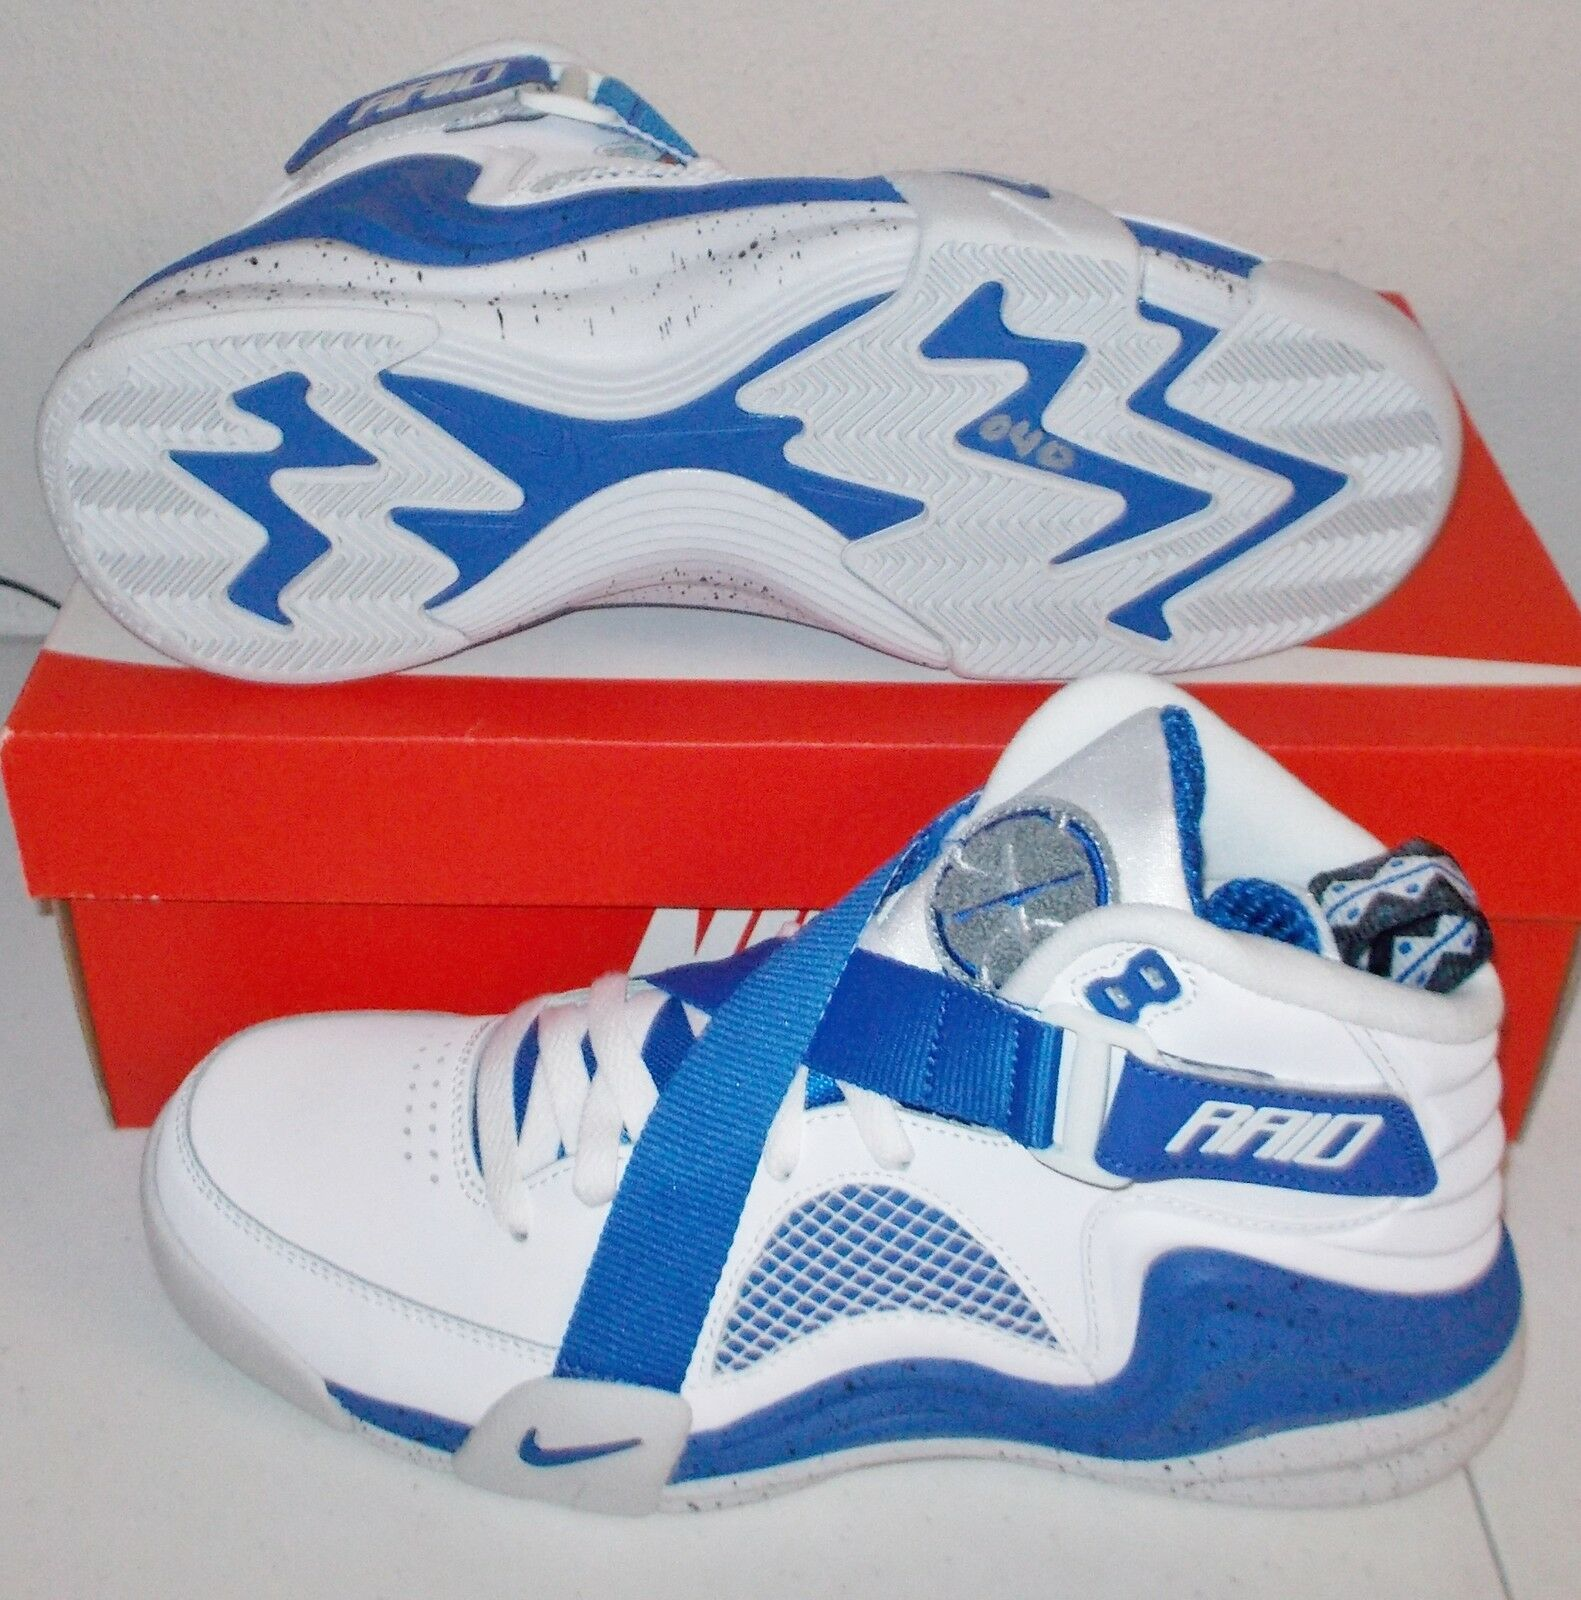 NEW NIKE LUNAR RAID White Royal MENS 8.5 Vintage Classic NIB 145